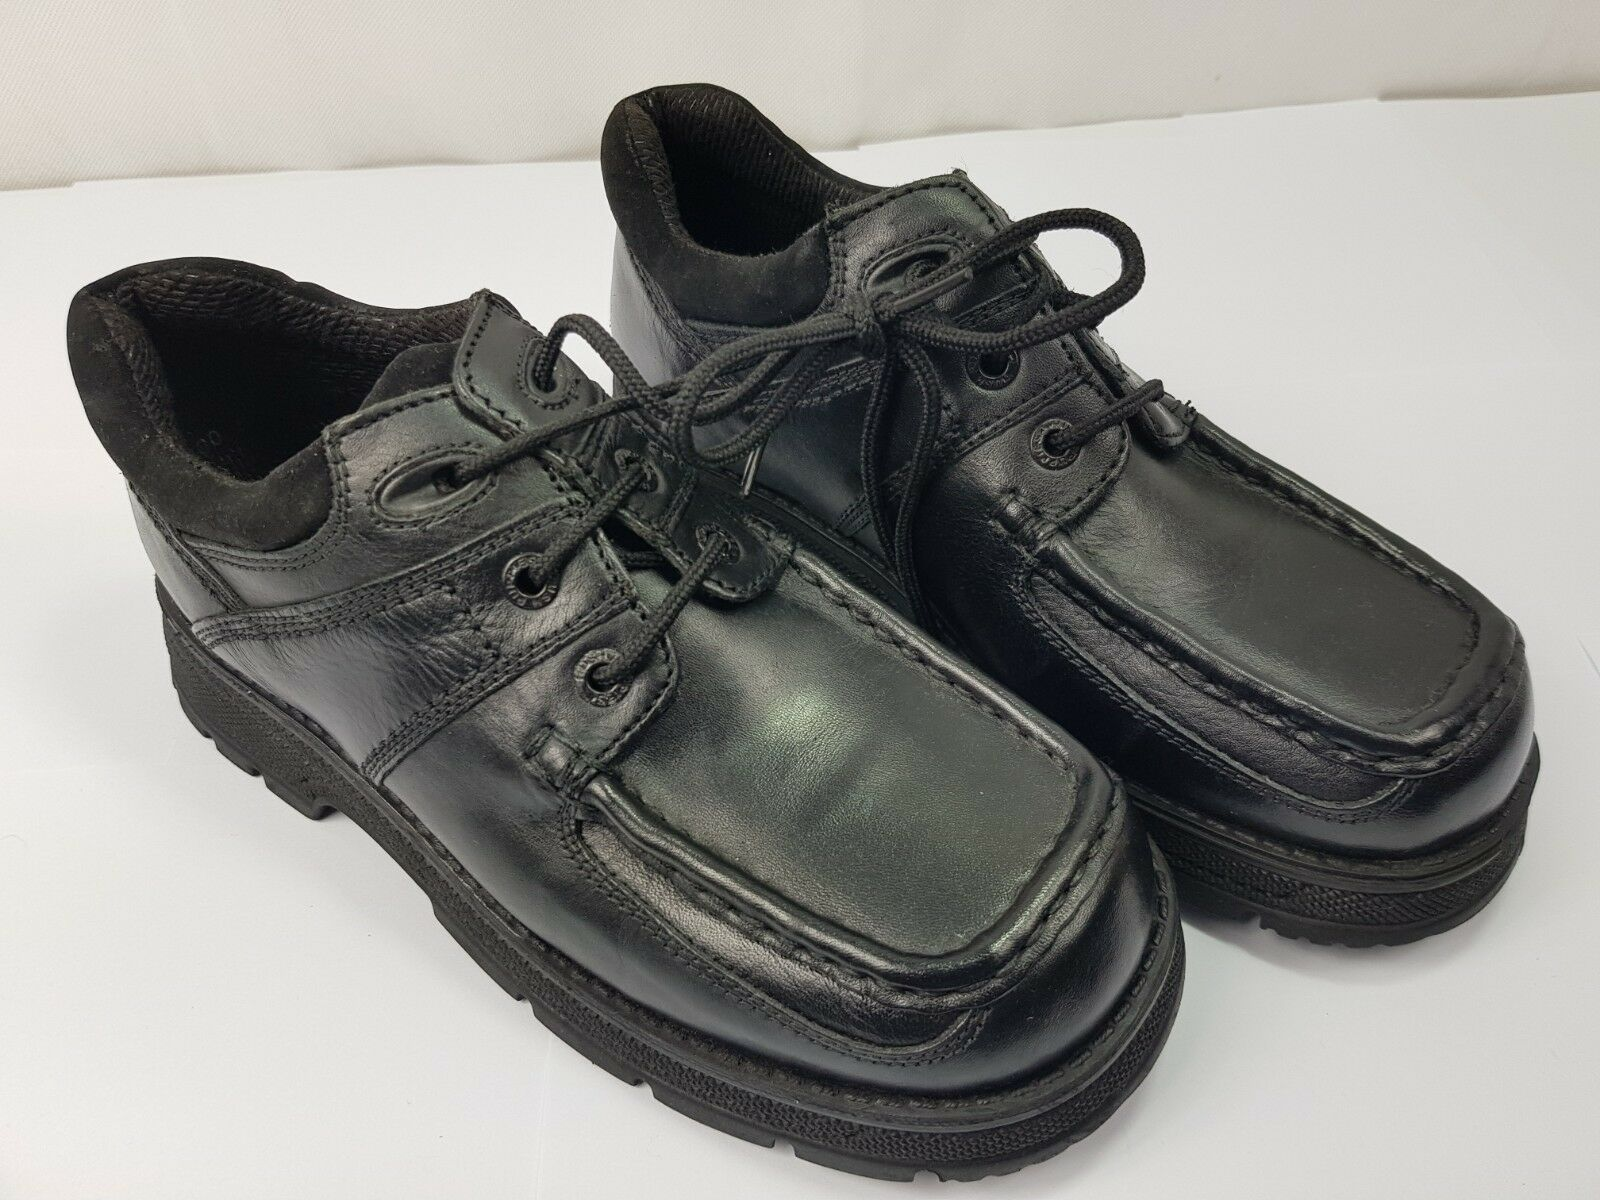 HUSH PUPPIES Carriage Boys Lace-up Black Leather School shoes UK 2.5 Ex Display